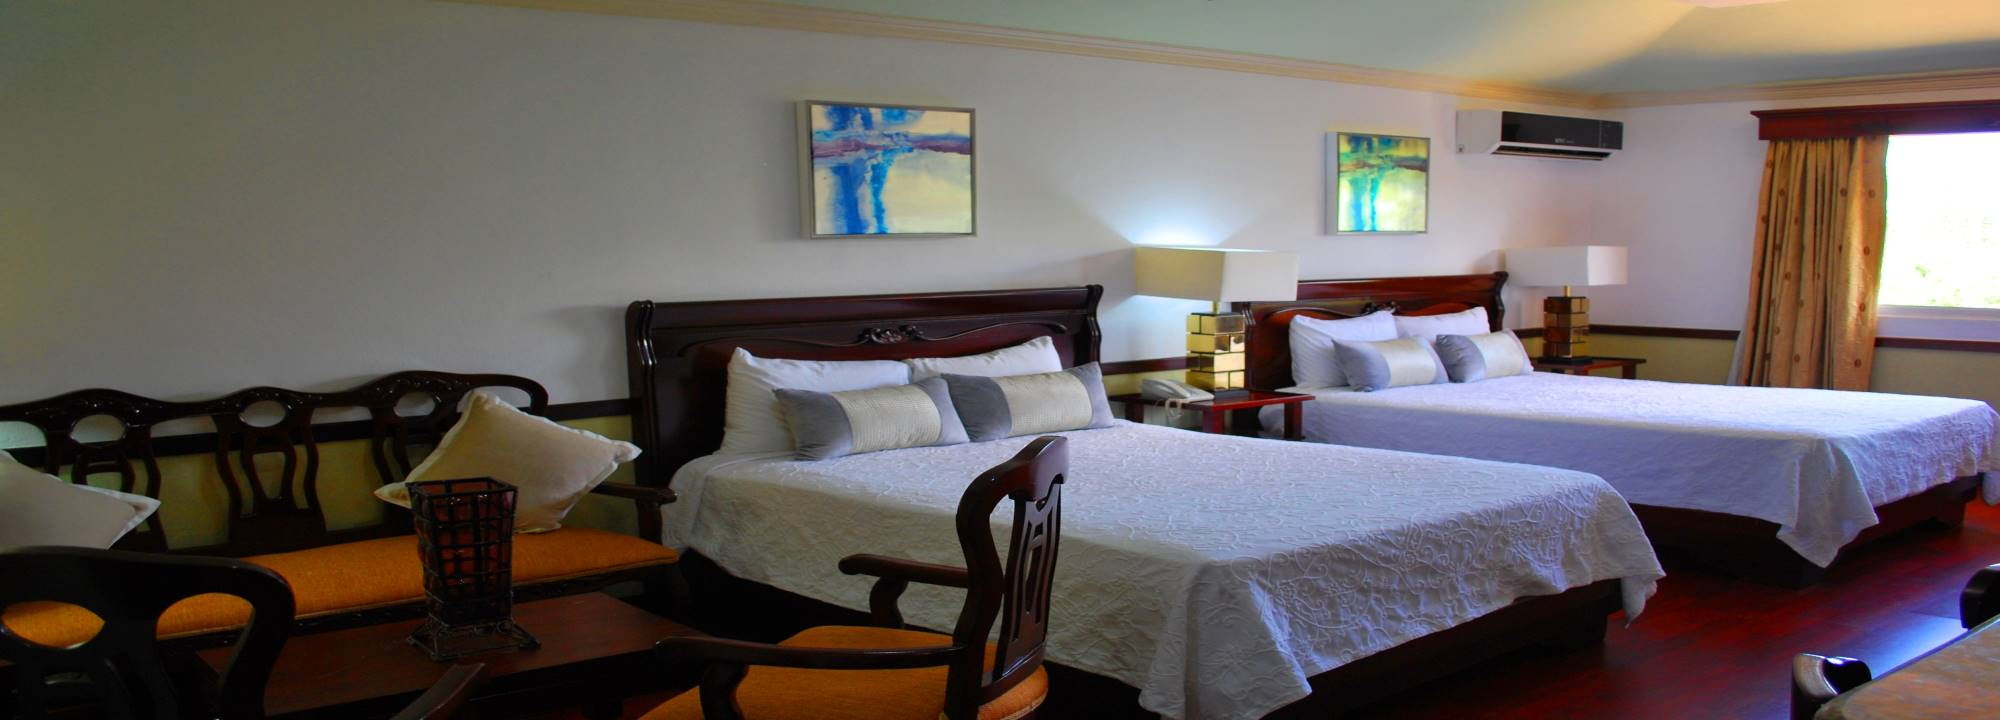 Junior Suite Deluxe located in Santiago, Dominican Republic